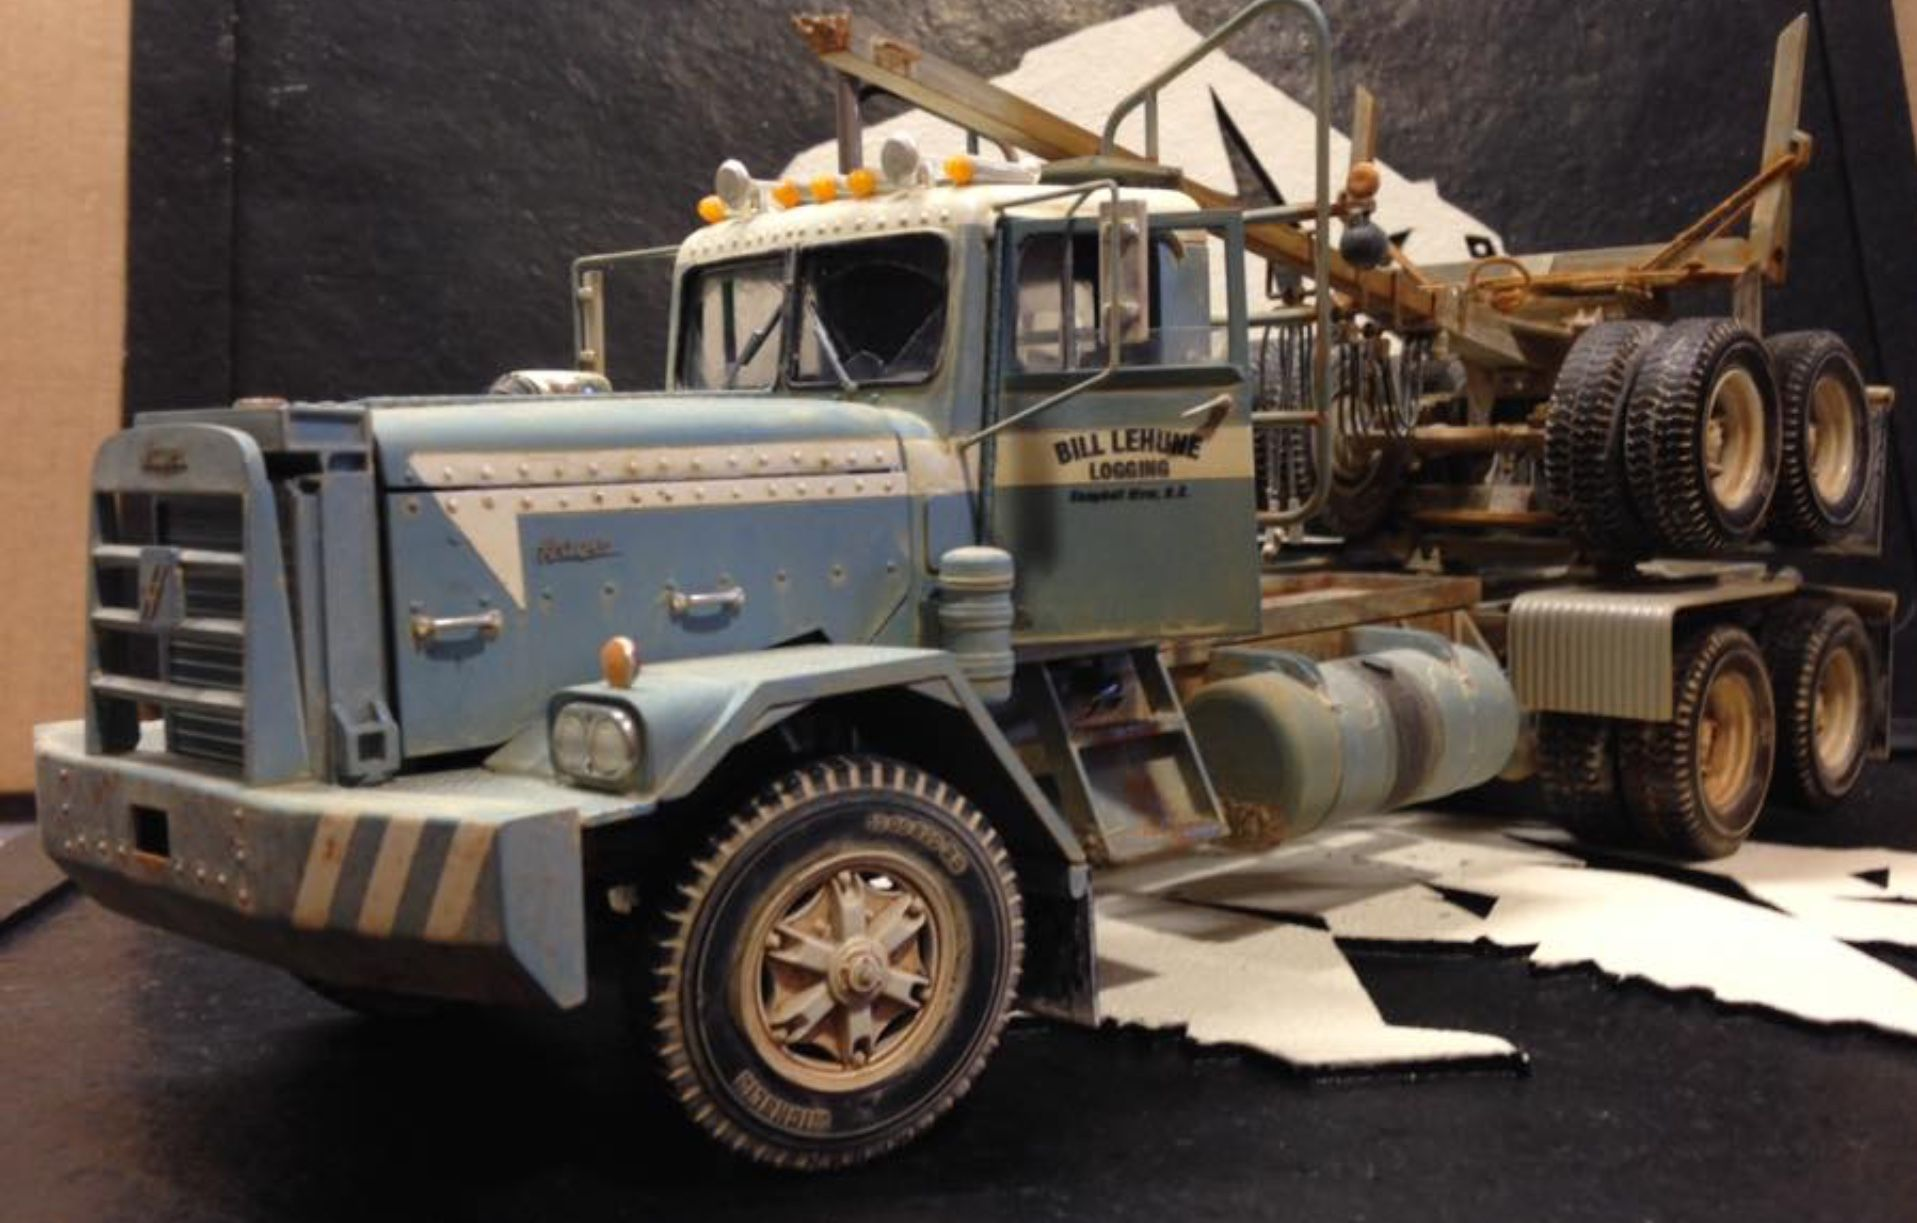 Pin by Tim on Model trucks | Model truck kits, Model cars